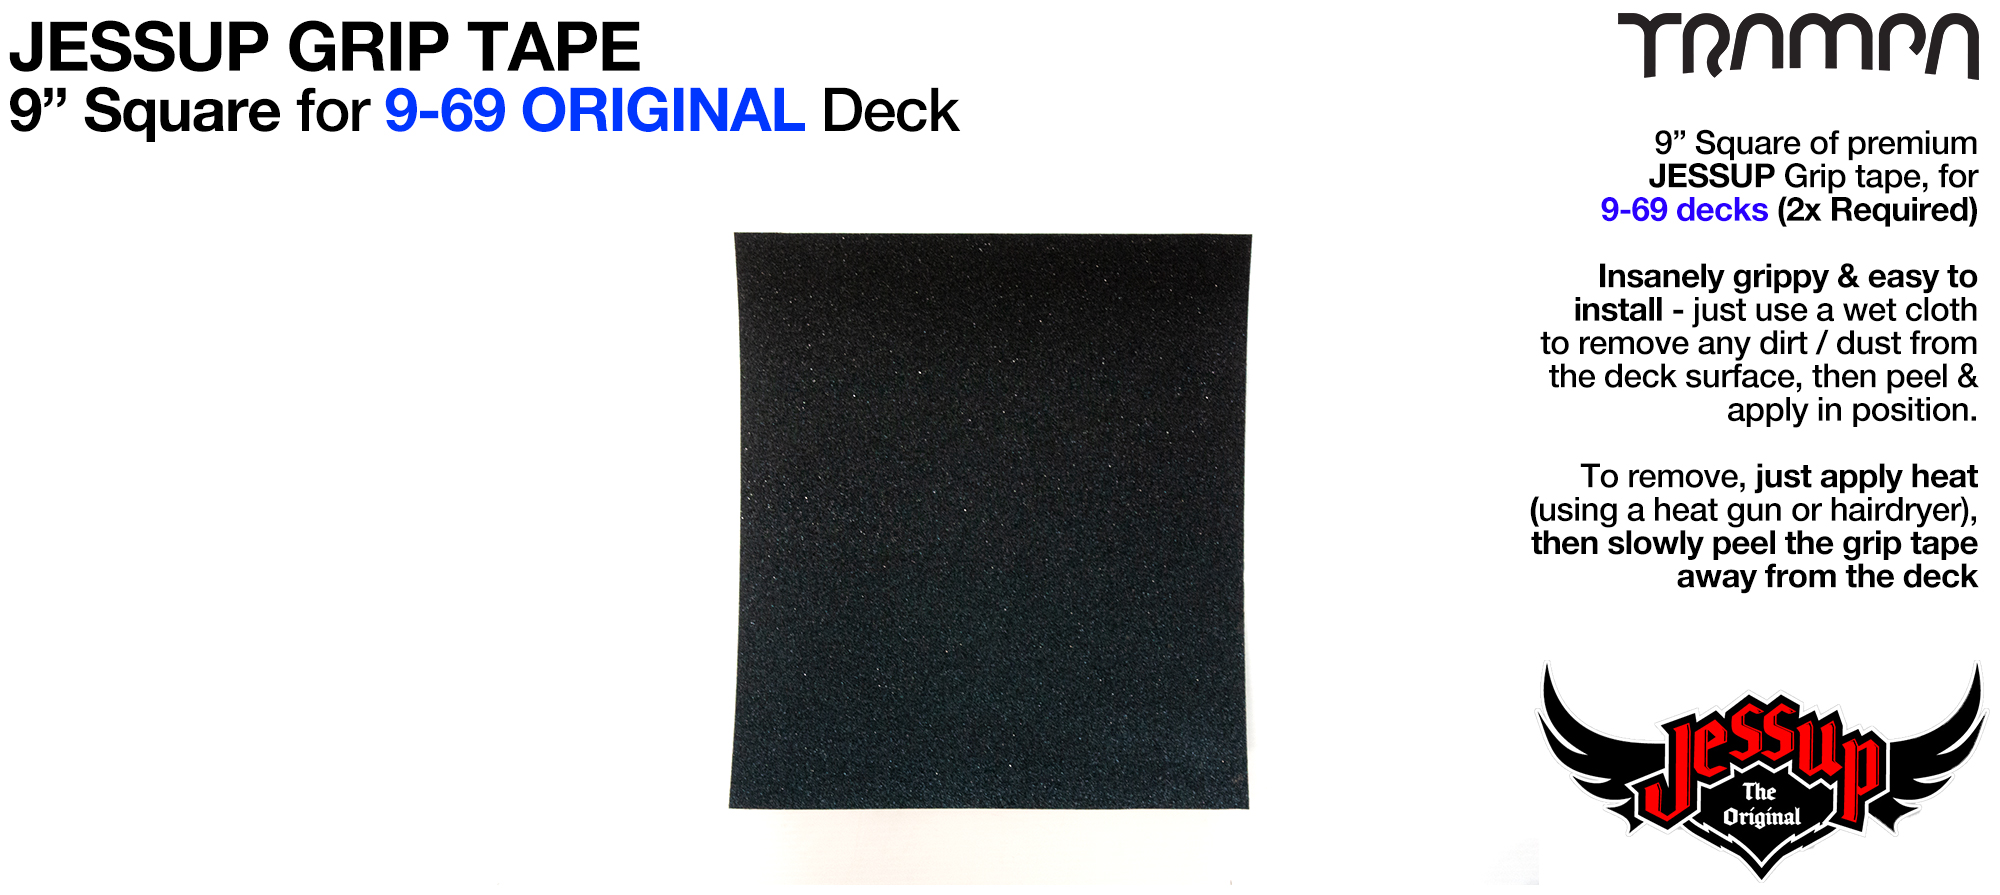 2 x 9 Inch squares of Top Quality Jessup Grip tape